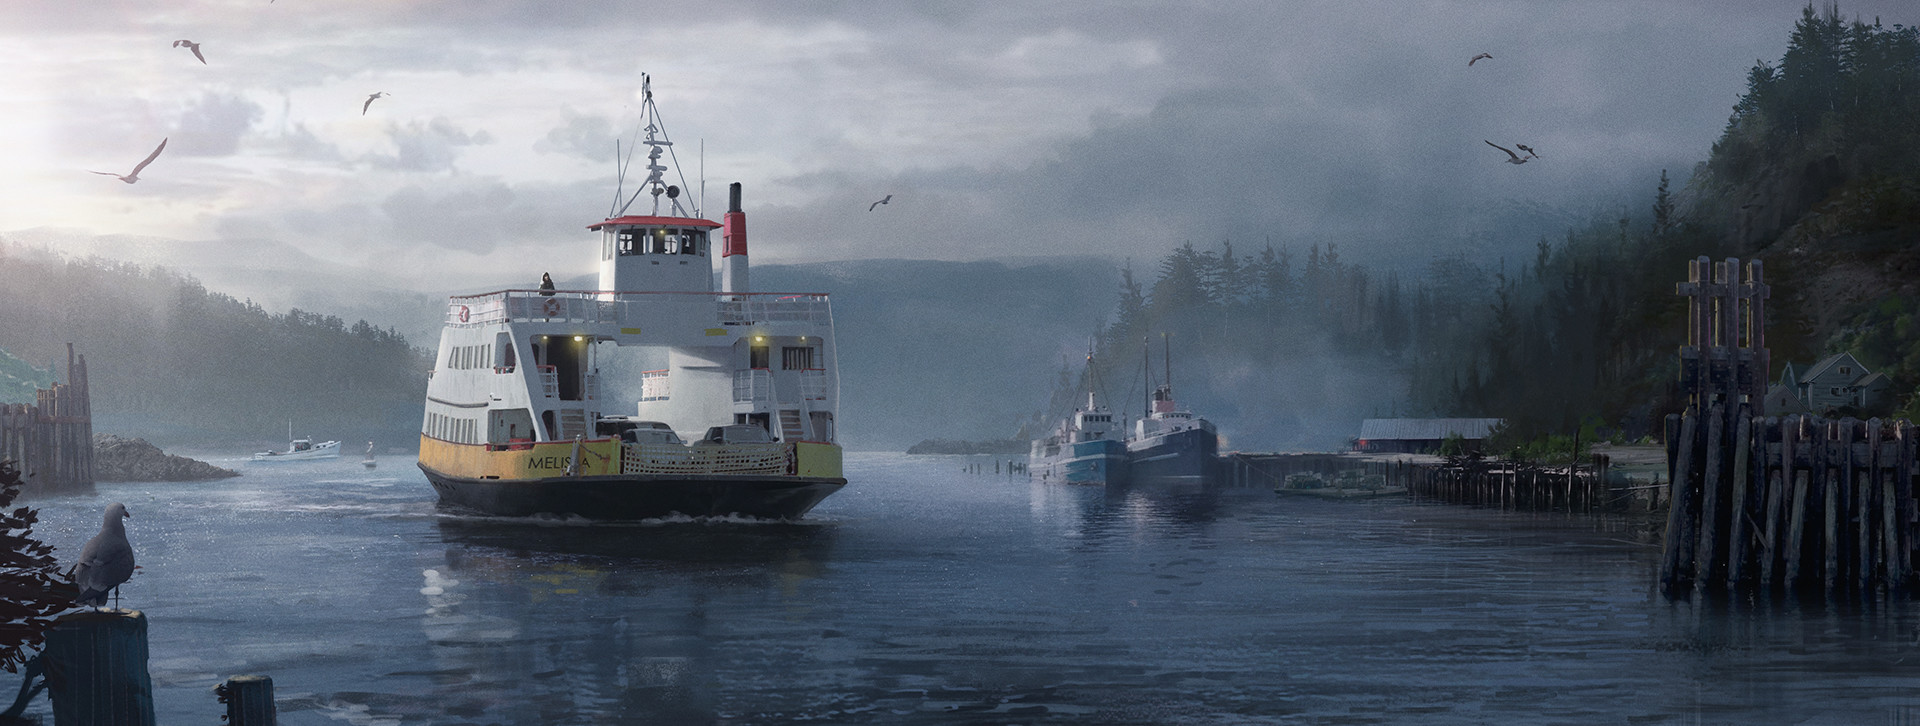 Jan ditlev c02 01 ferry 02